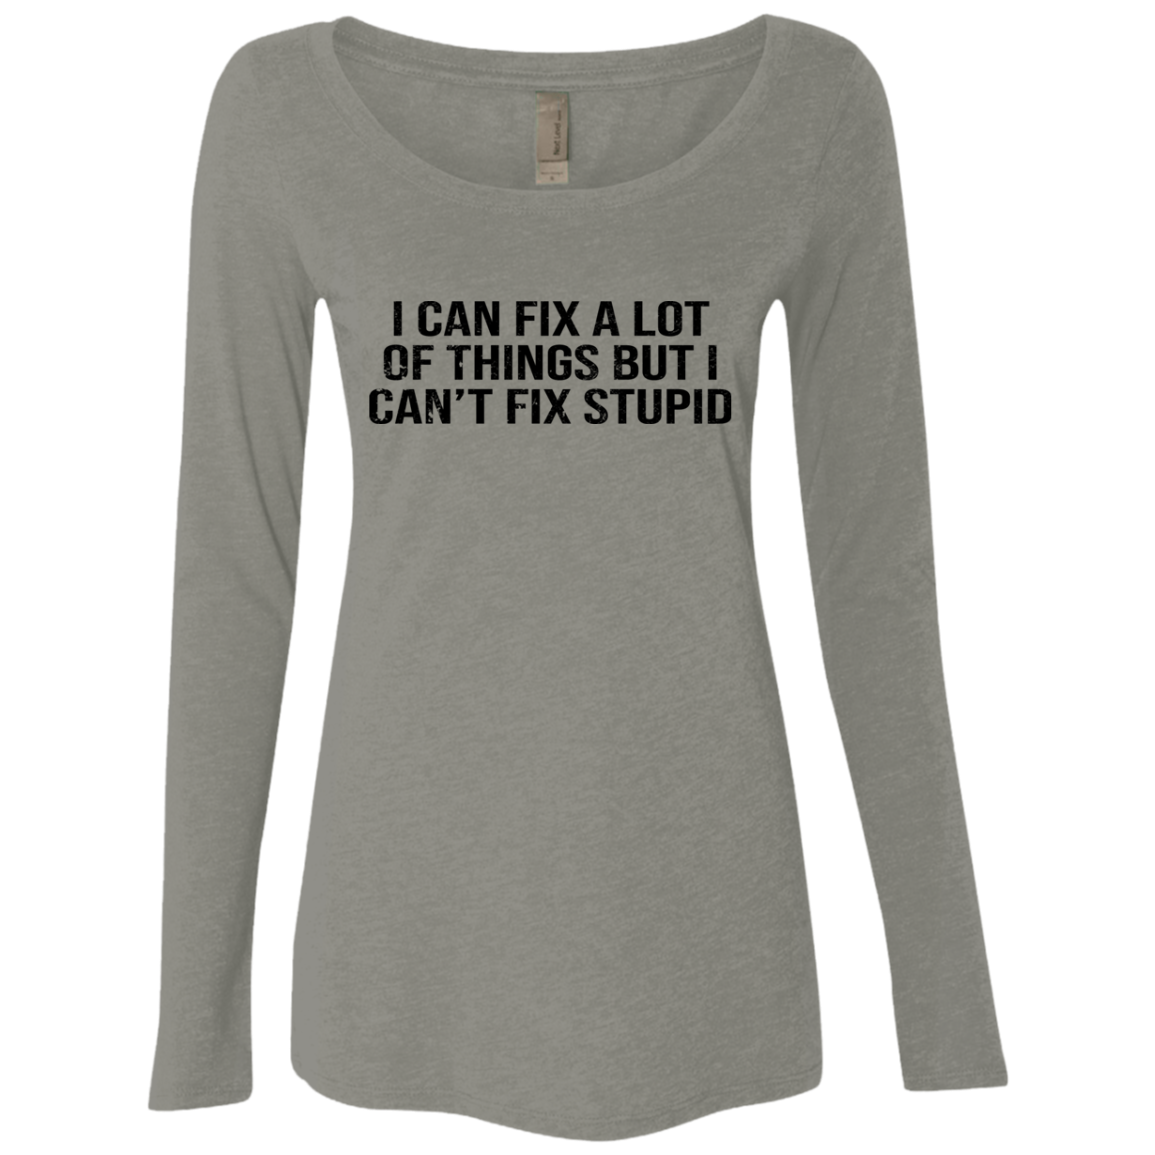 I Can Fix A Lot Of Things But I Can't Fix Stupid Women's Long Sleeve Tee